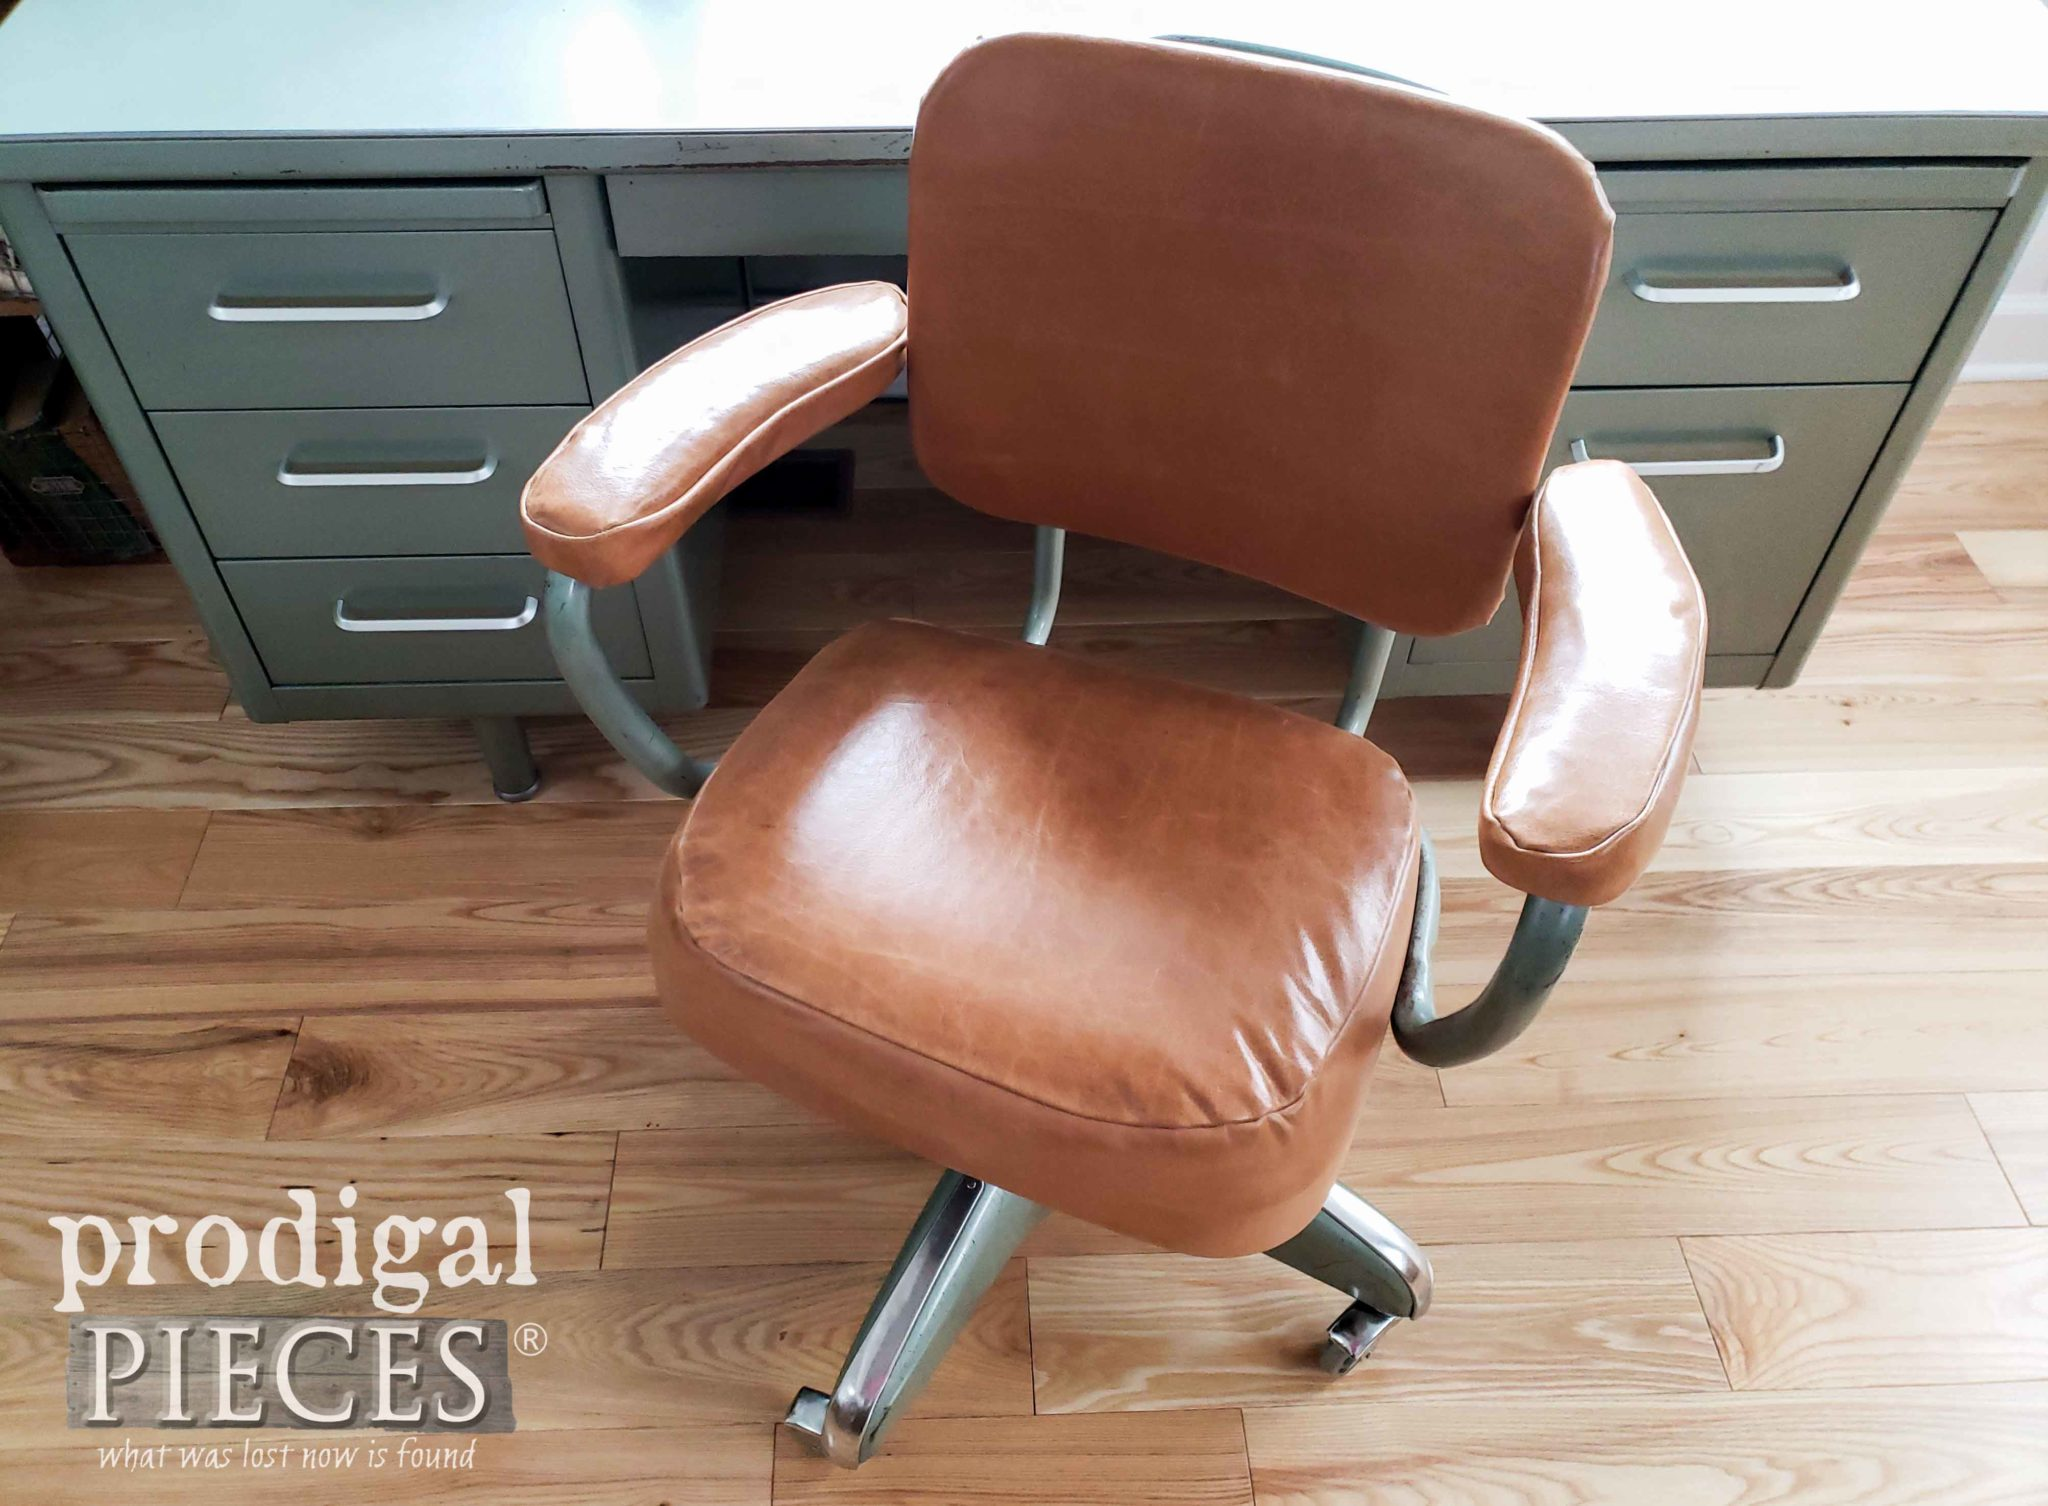 DIY Tutorial on How to Cover a Vintage Industrial Office Chair with Leather by Larissa of Prodigal Pieces | Video Tutorial at prodigalpieces.com #prodigalpieces #furniture #home #retro #homedecor #vintage #videos